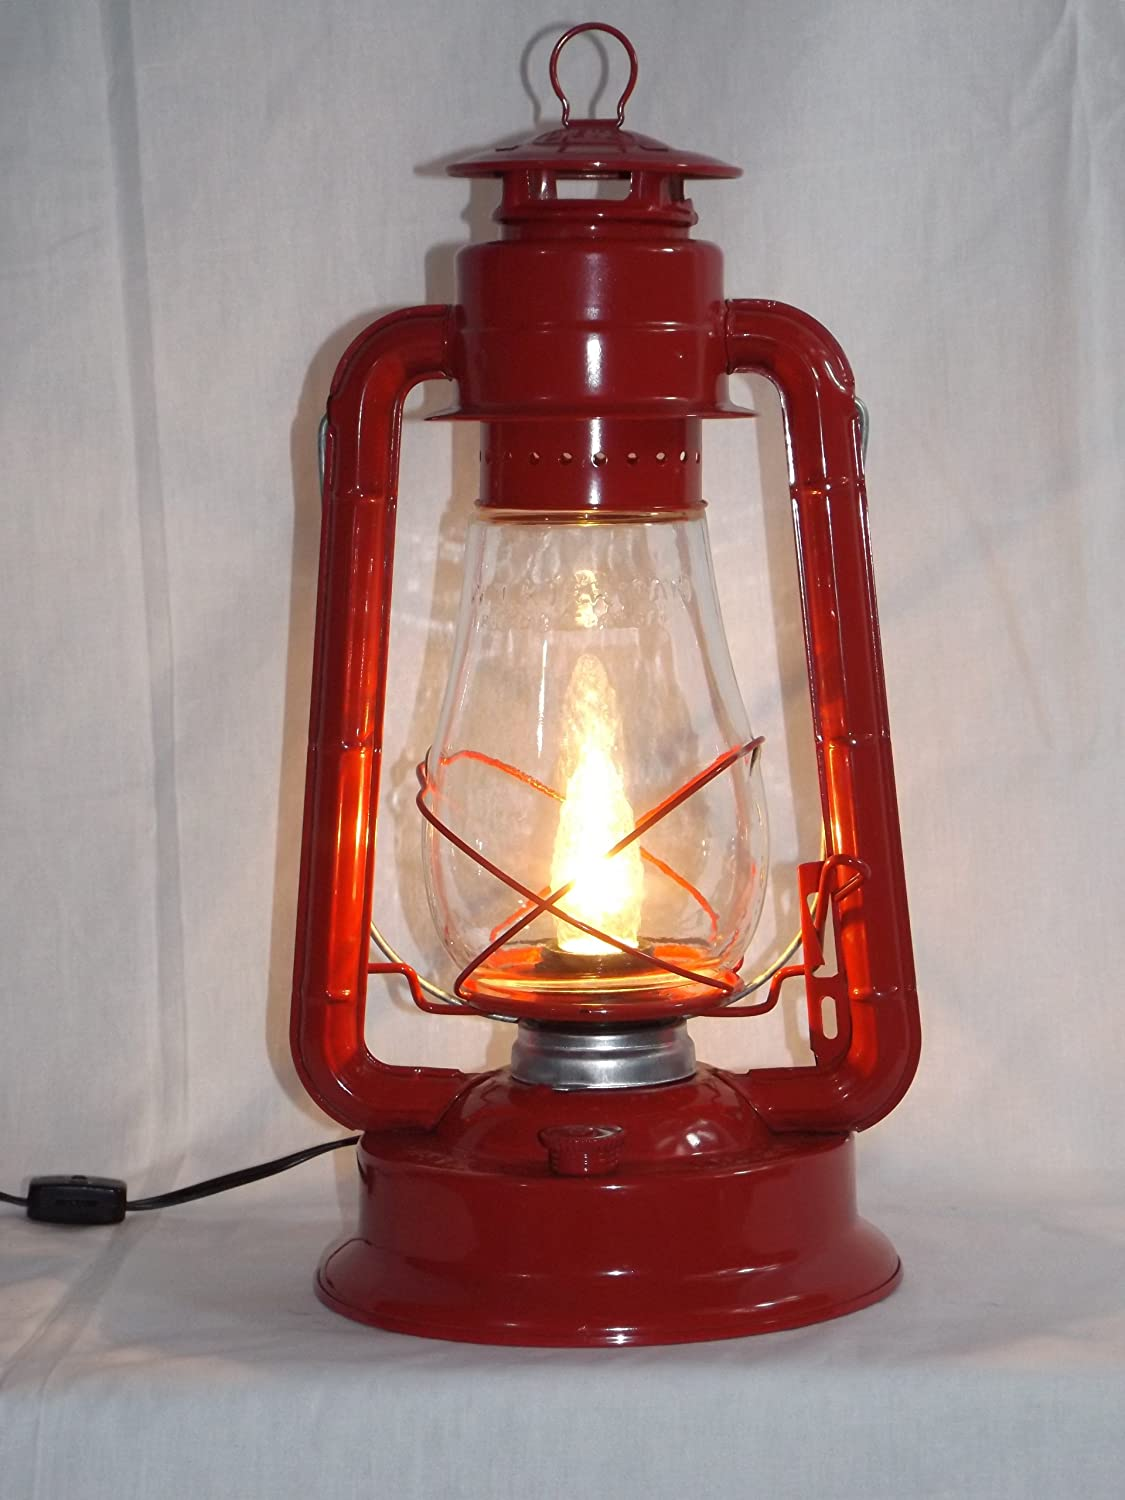 Dietz blizzard vintage style electric lantern table lamp red dietz blizzard vintage style electric lantern table lamp red amazon aloadofball Image collections